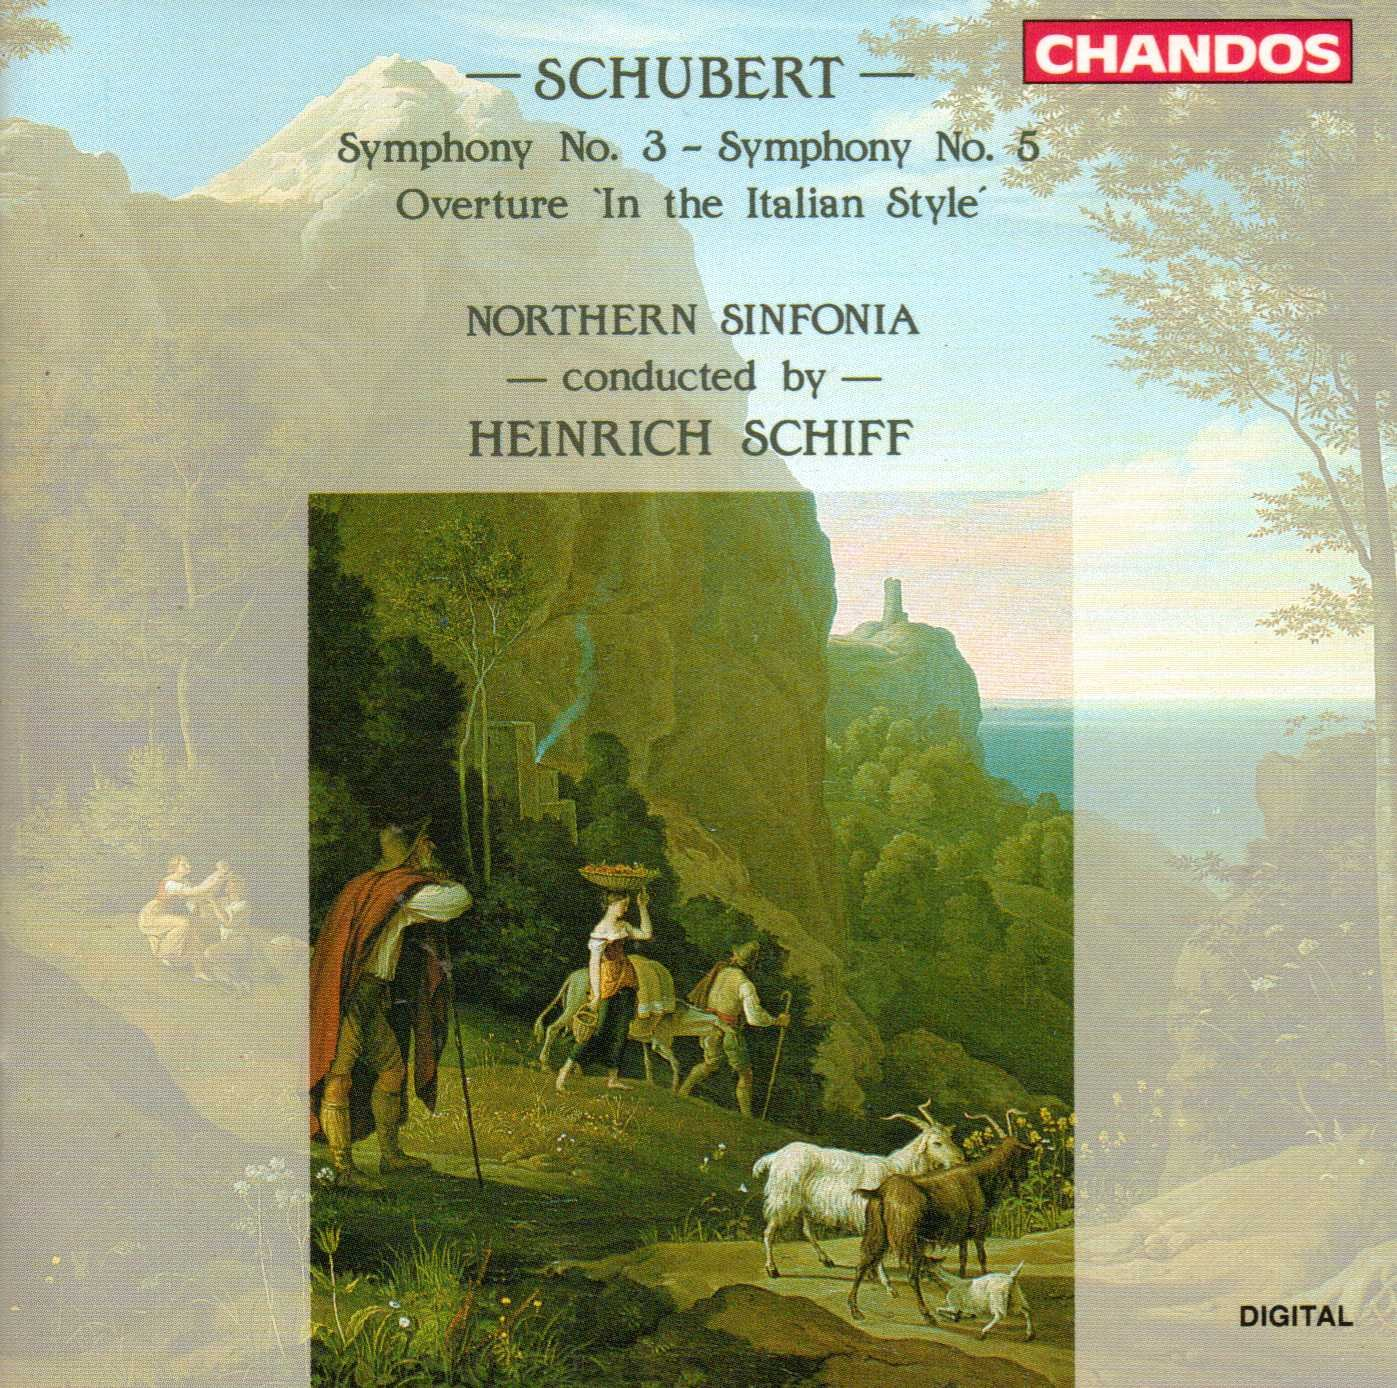 Schubert - Heinrich Schiff Symphony No. 3 / Symphony No. 5 / Overture 'In The Italian Style'